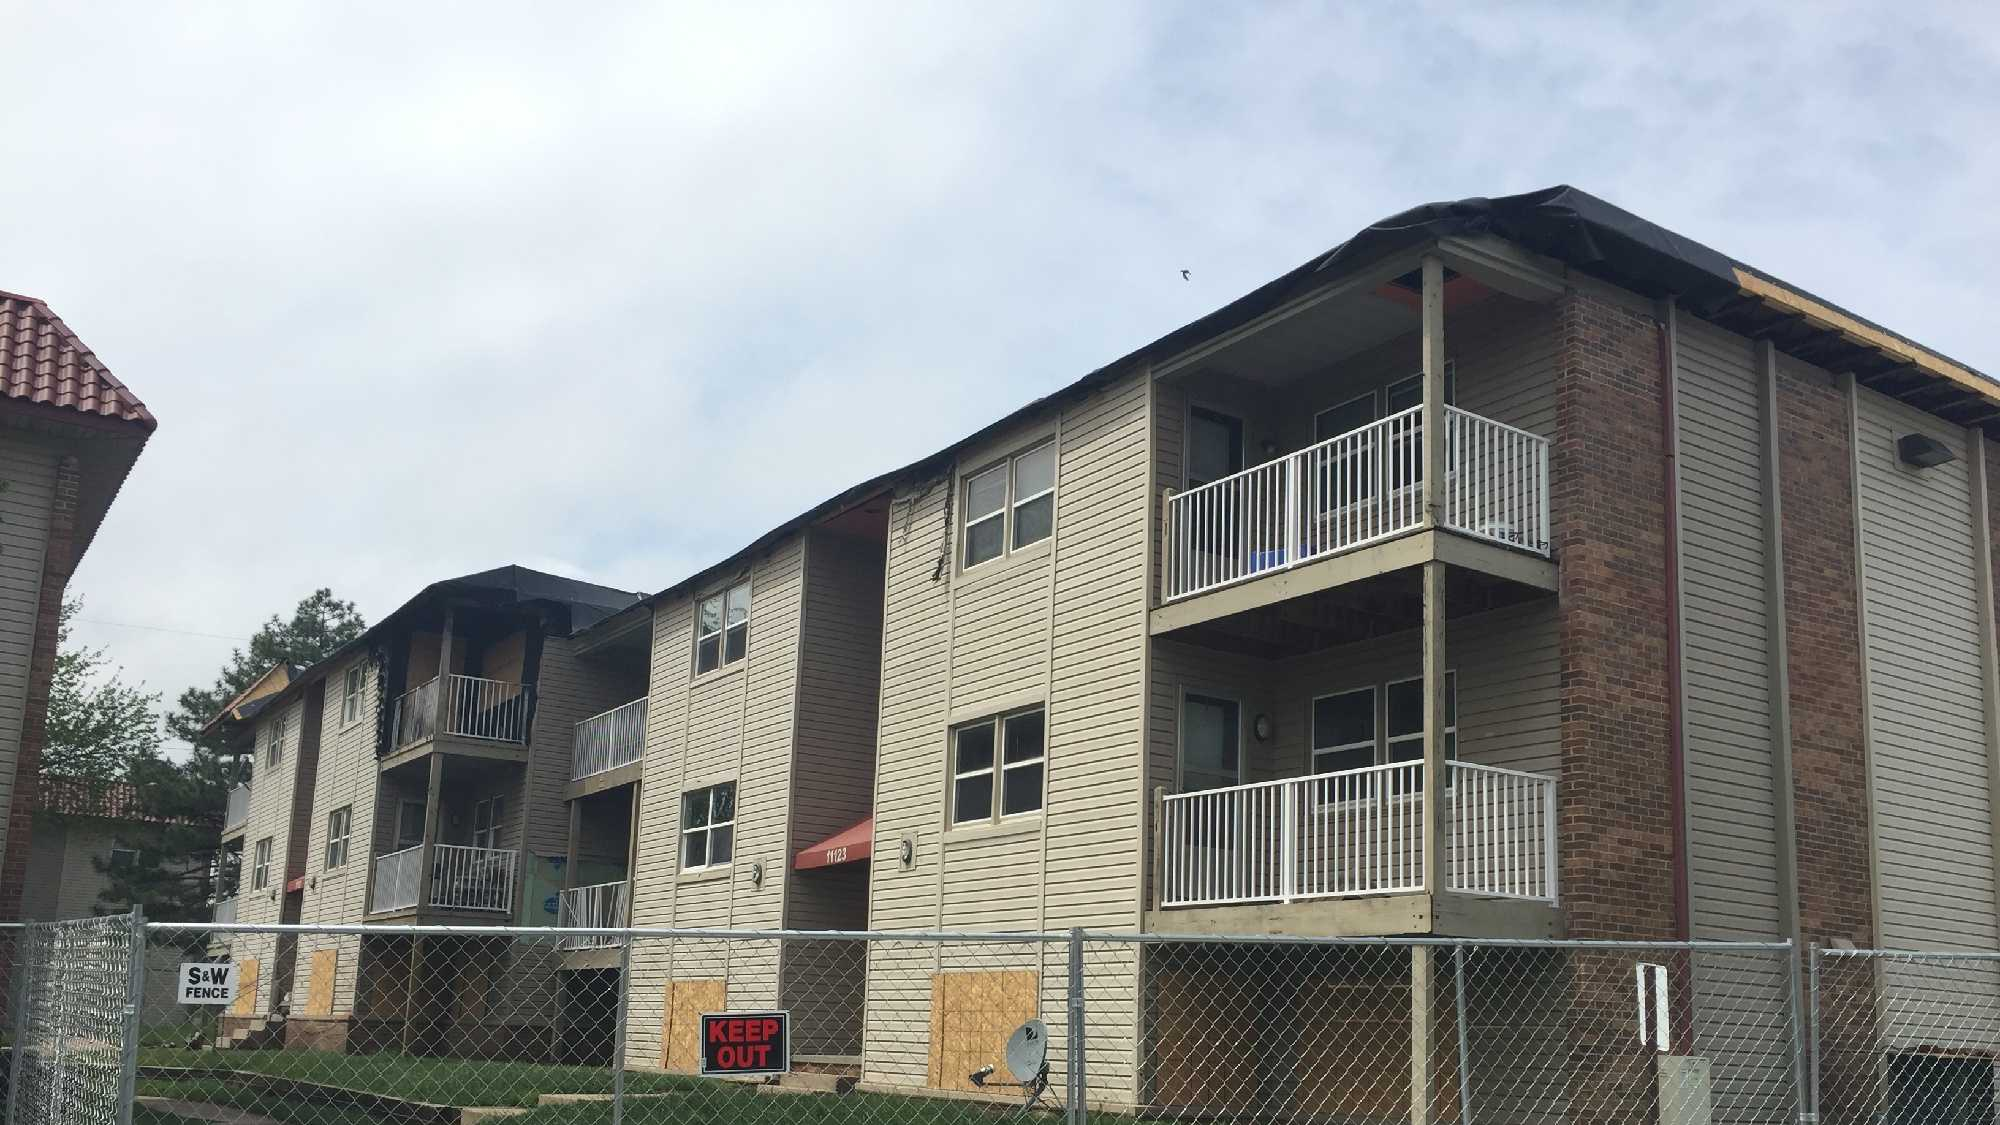 Prosecutors are considering filing criminal charges against a woman in connection to a west Omaha apartment fire that started as result of charcoal grill on her deck.